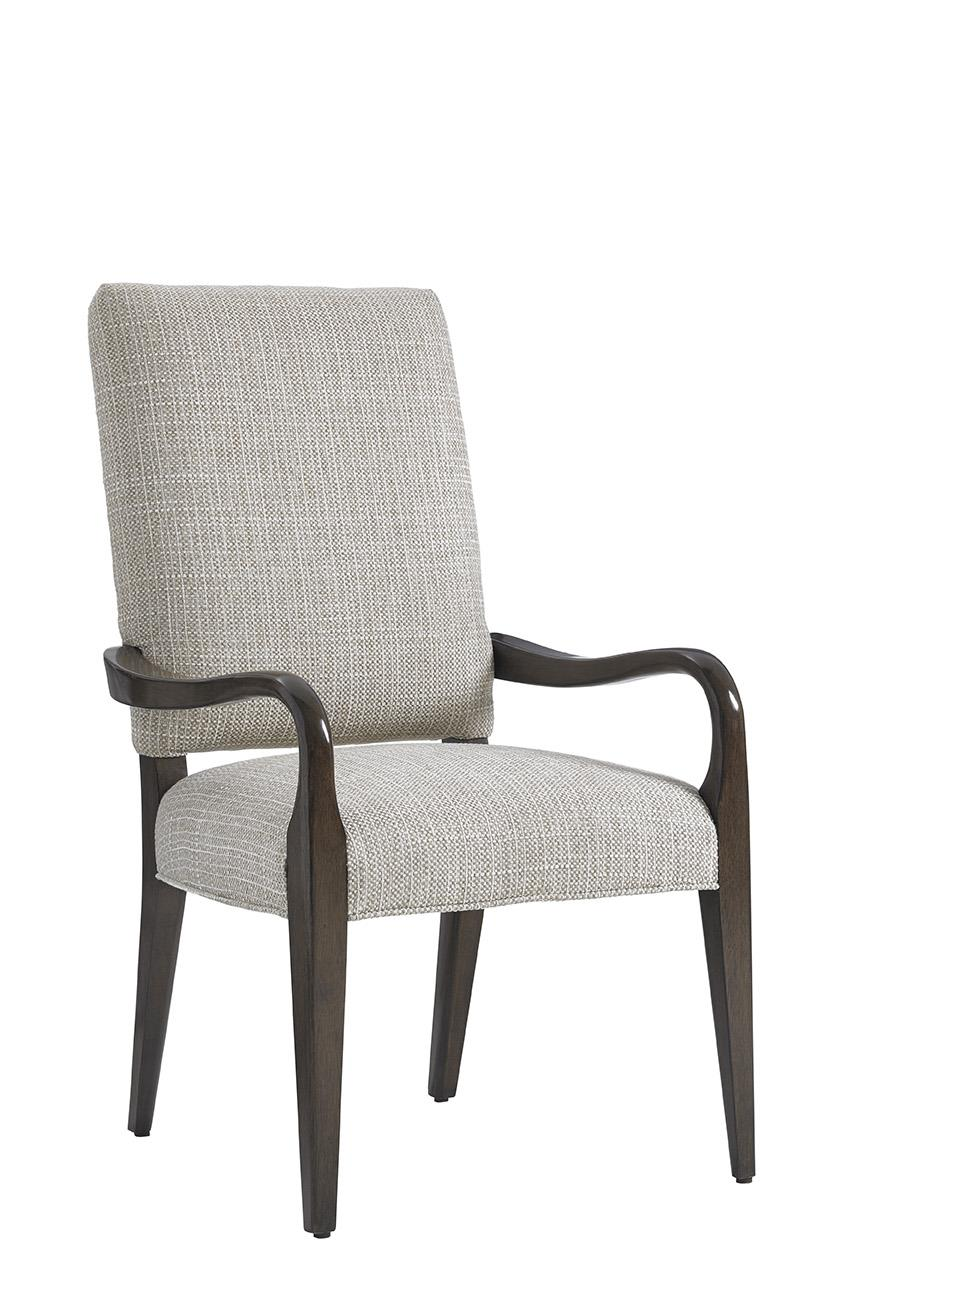 Sierra Upholstered Arm Chair (Married Fabr)